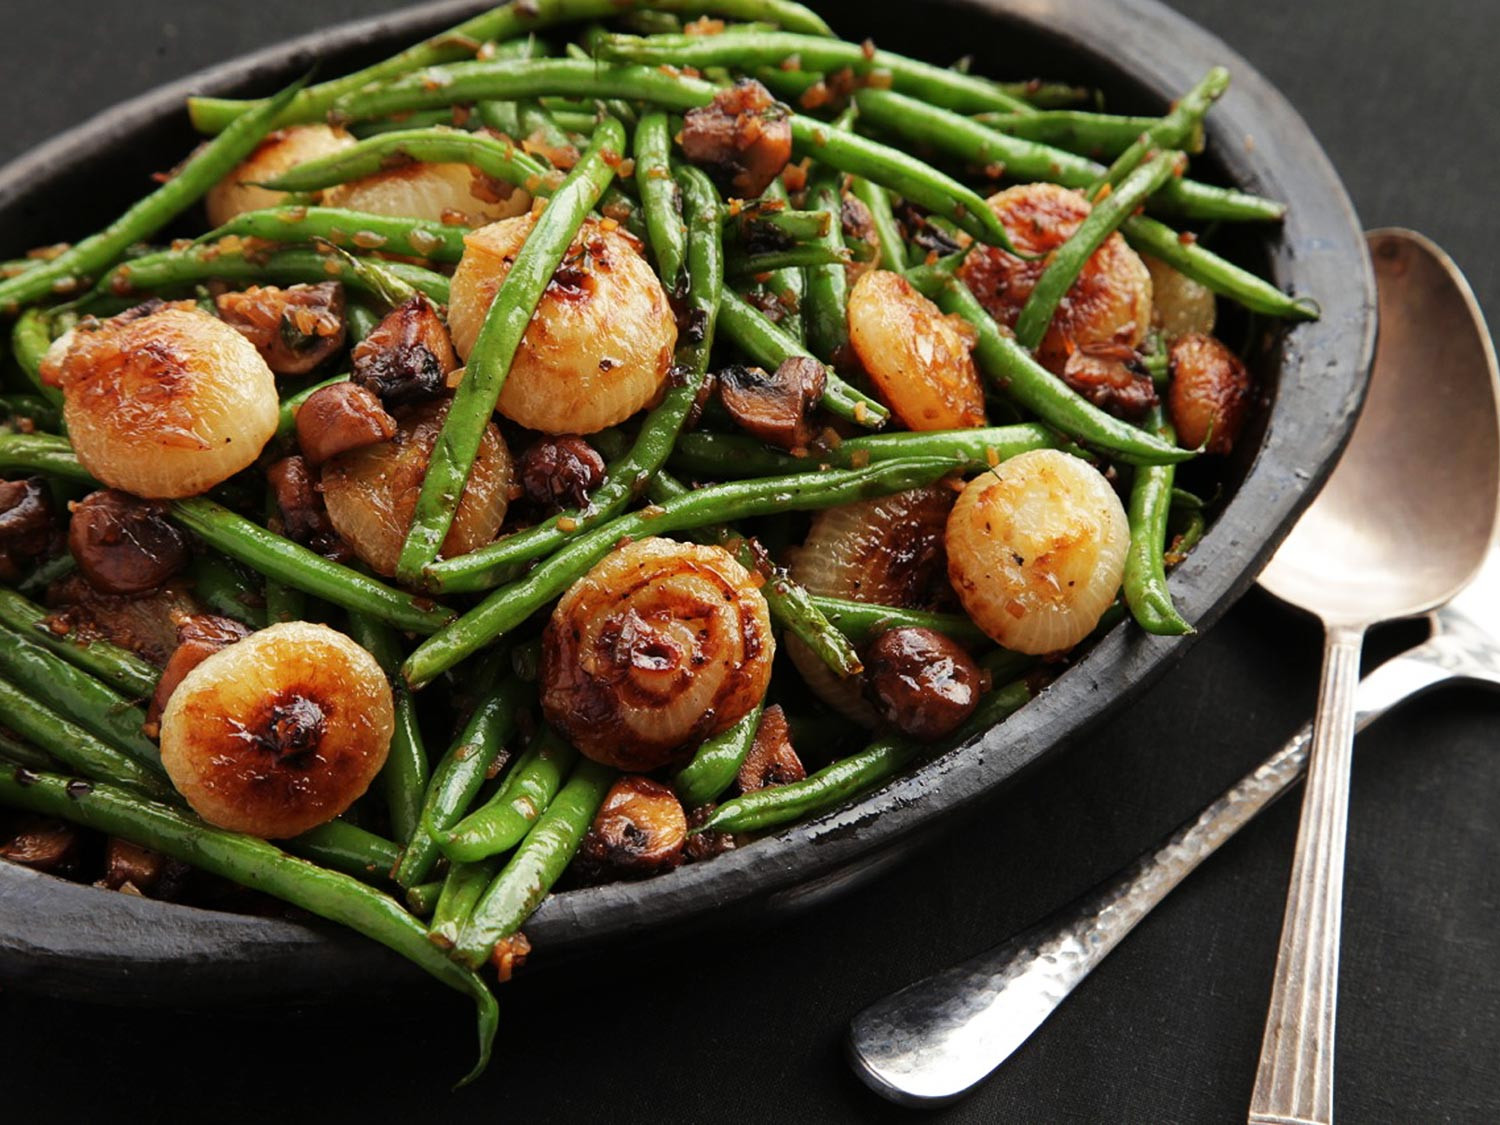 Green Bean Recipes  The Food Lab Sautéed Green Beans With Mushrooms and